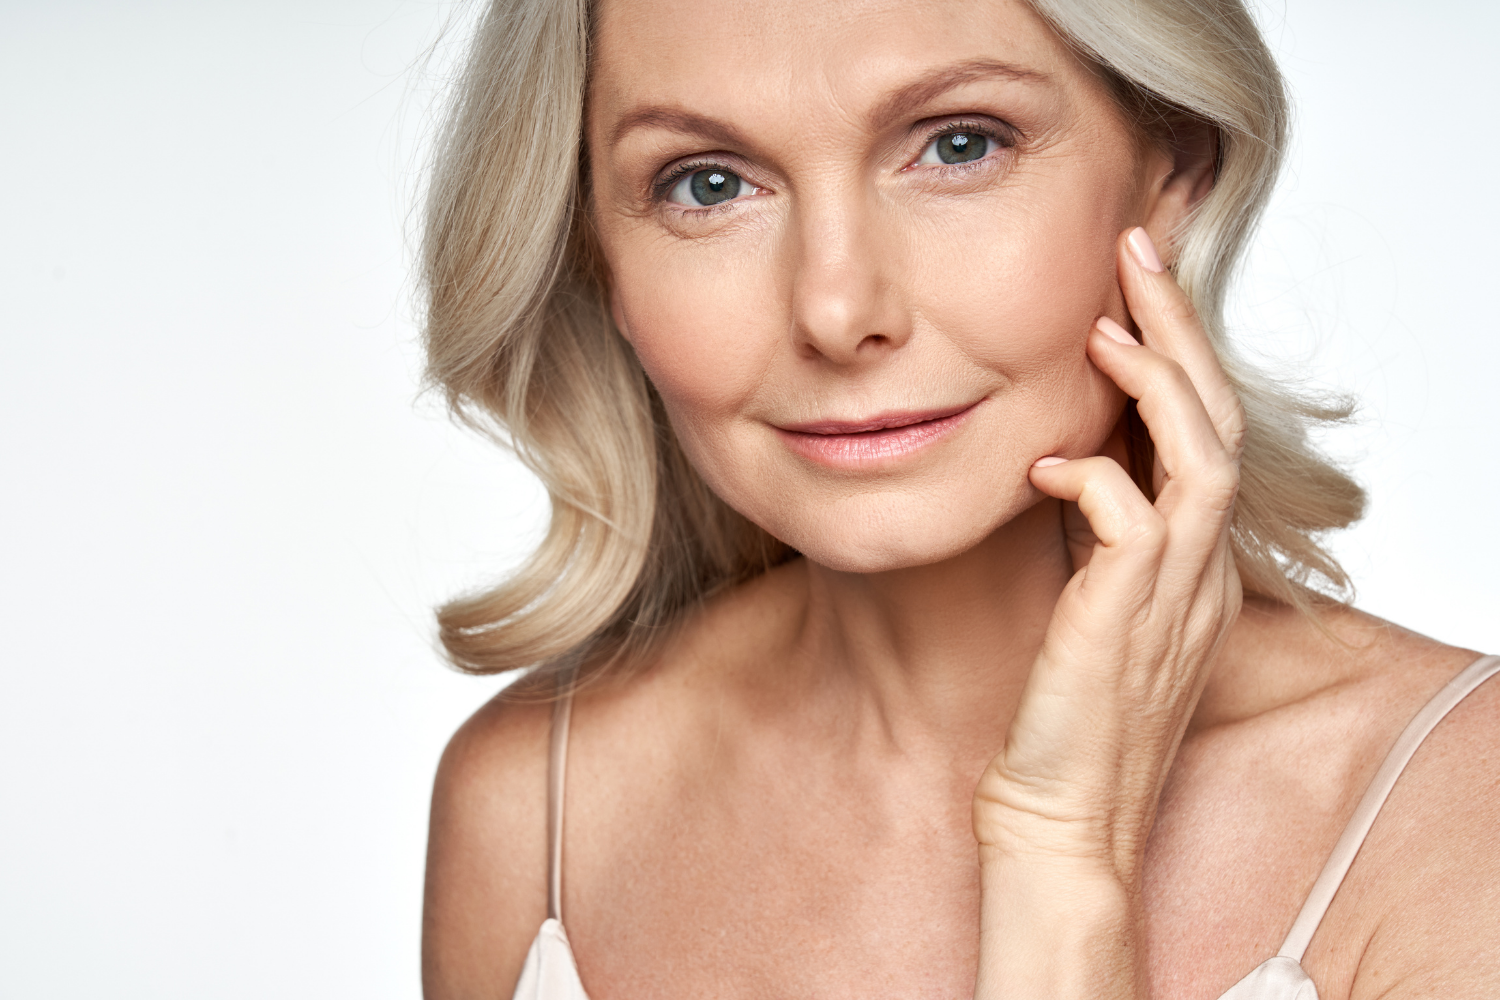 woman noticing the change in her skin due to aging and reached out to LifeGaines for facial treatments